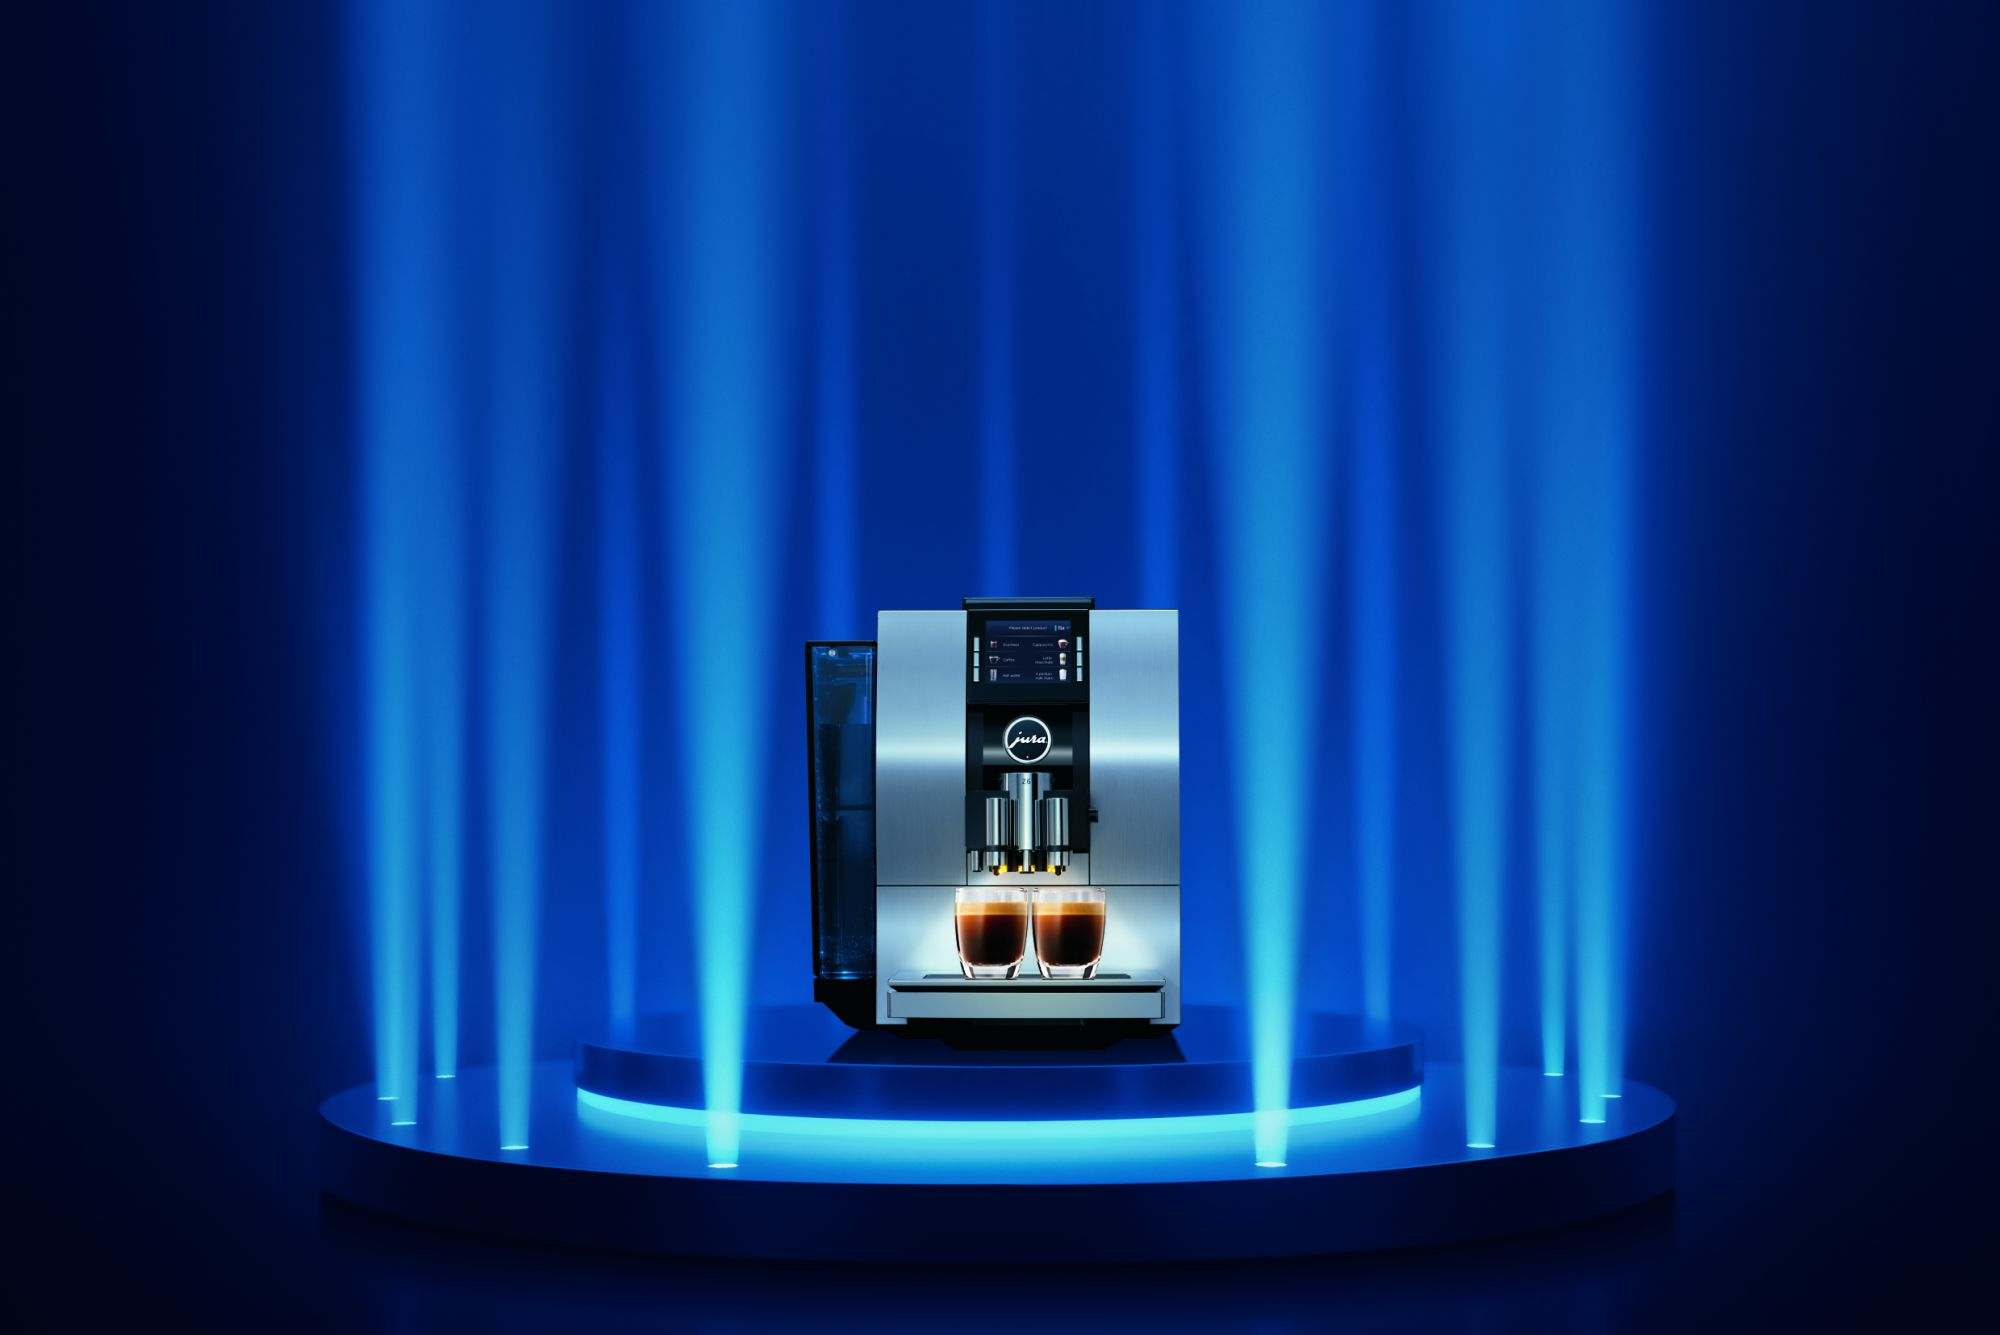 Coffee Gets Smart With The JURA Z6